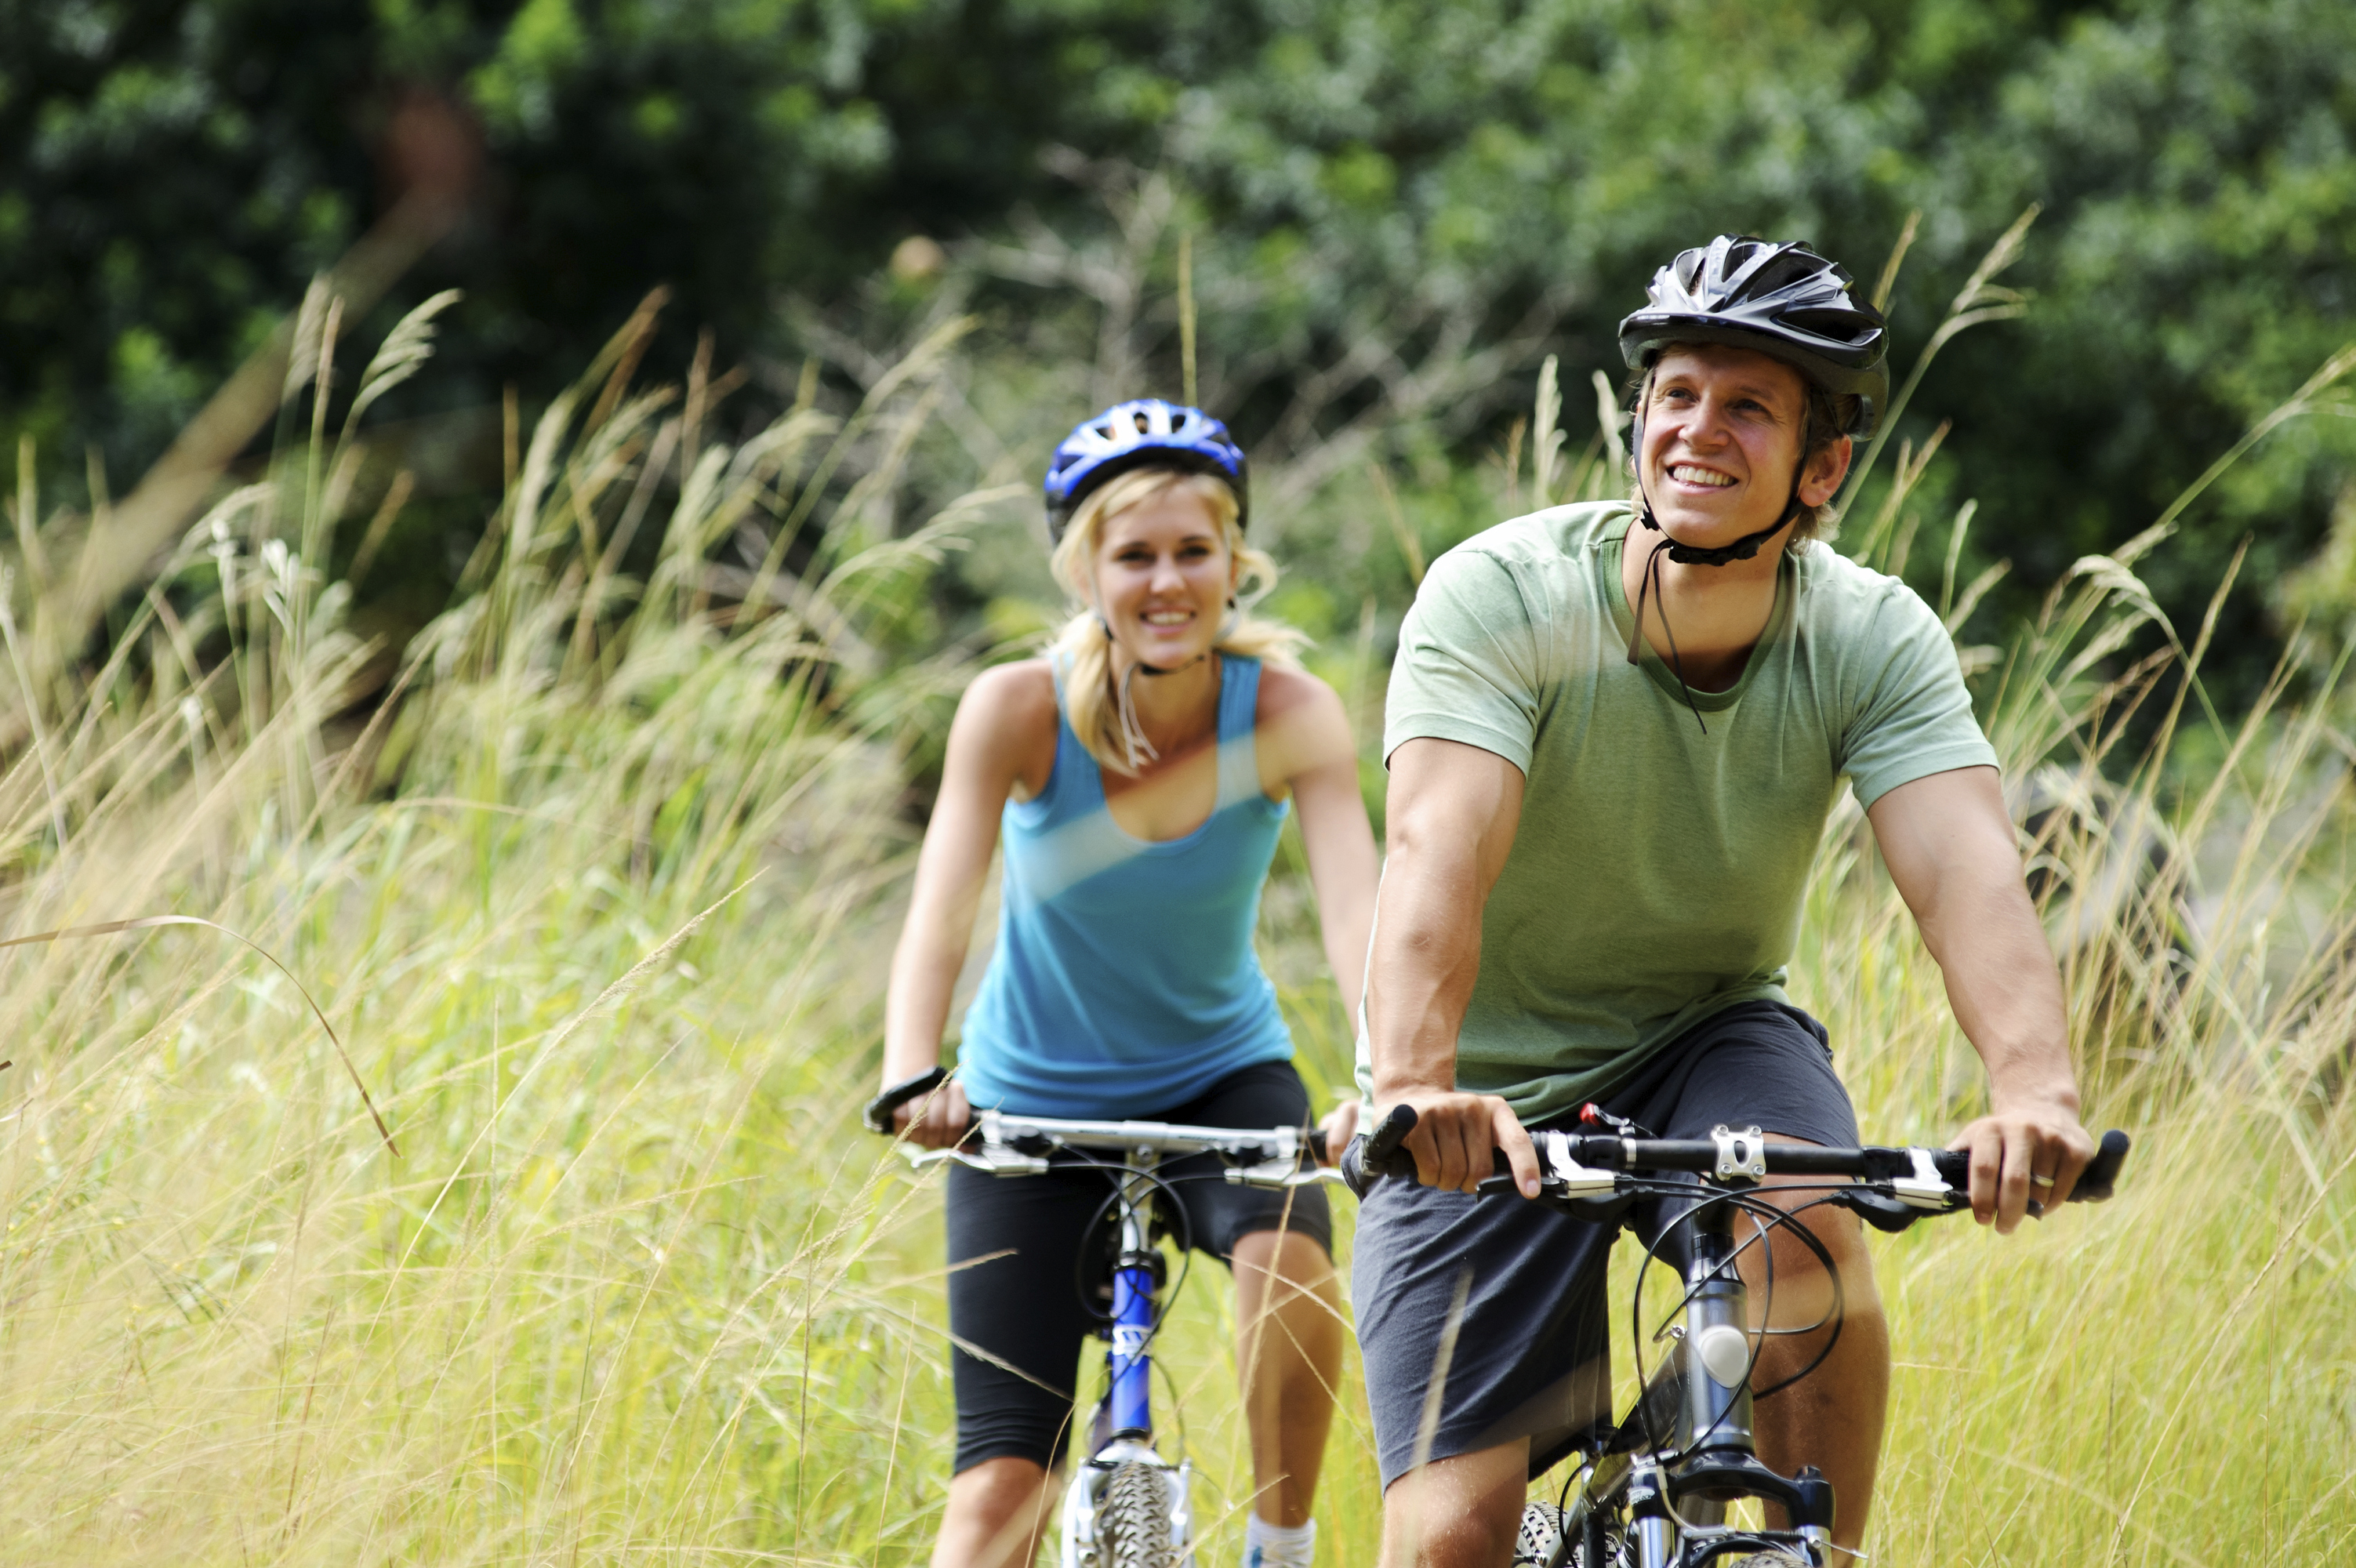 Aerobics against fat: how many calories are burned while riding a bike